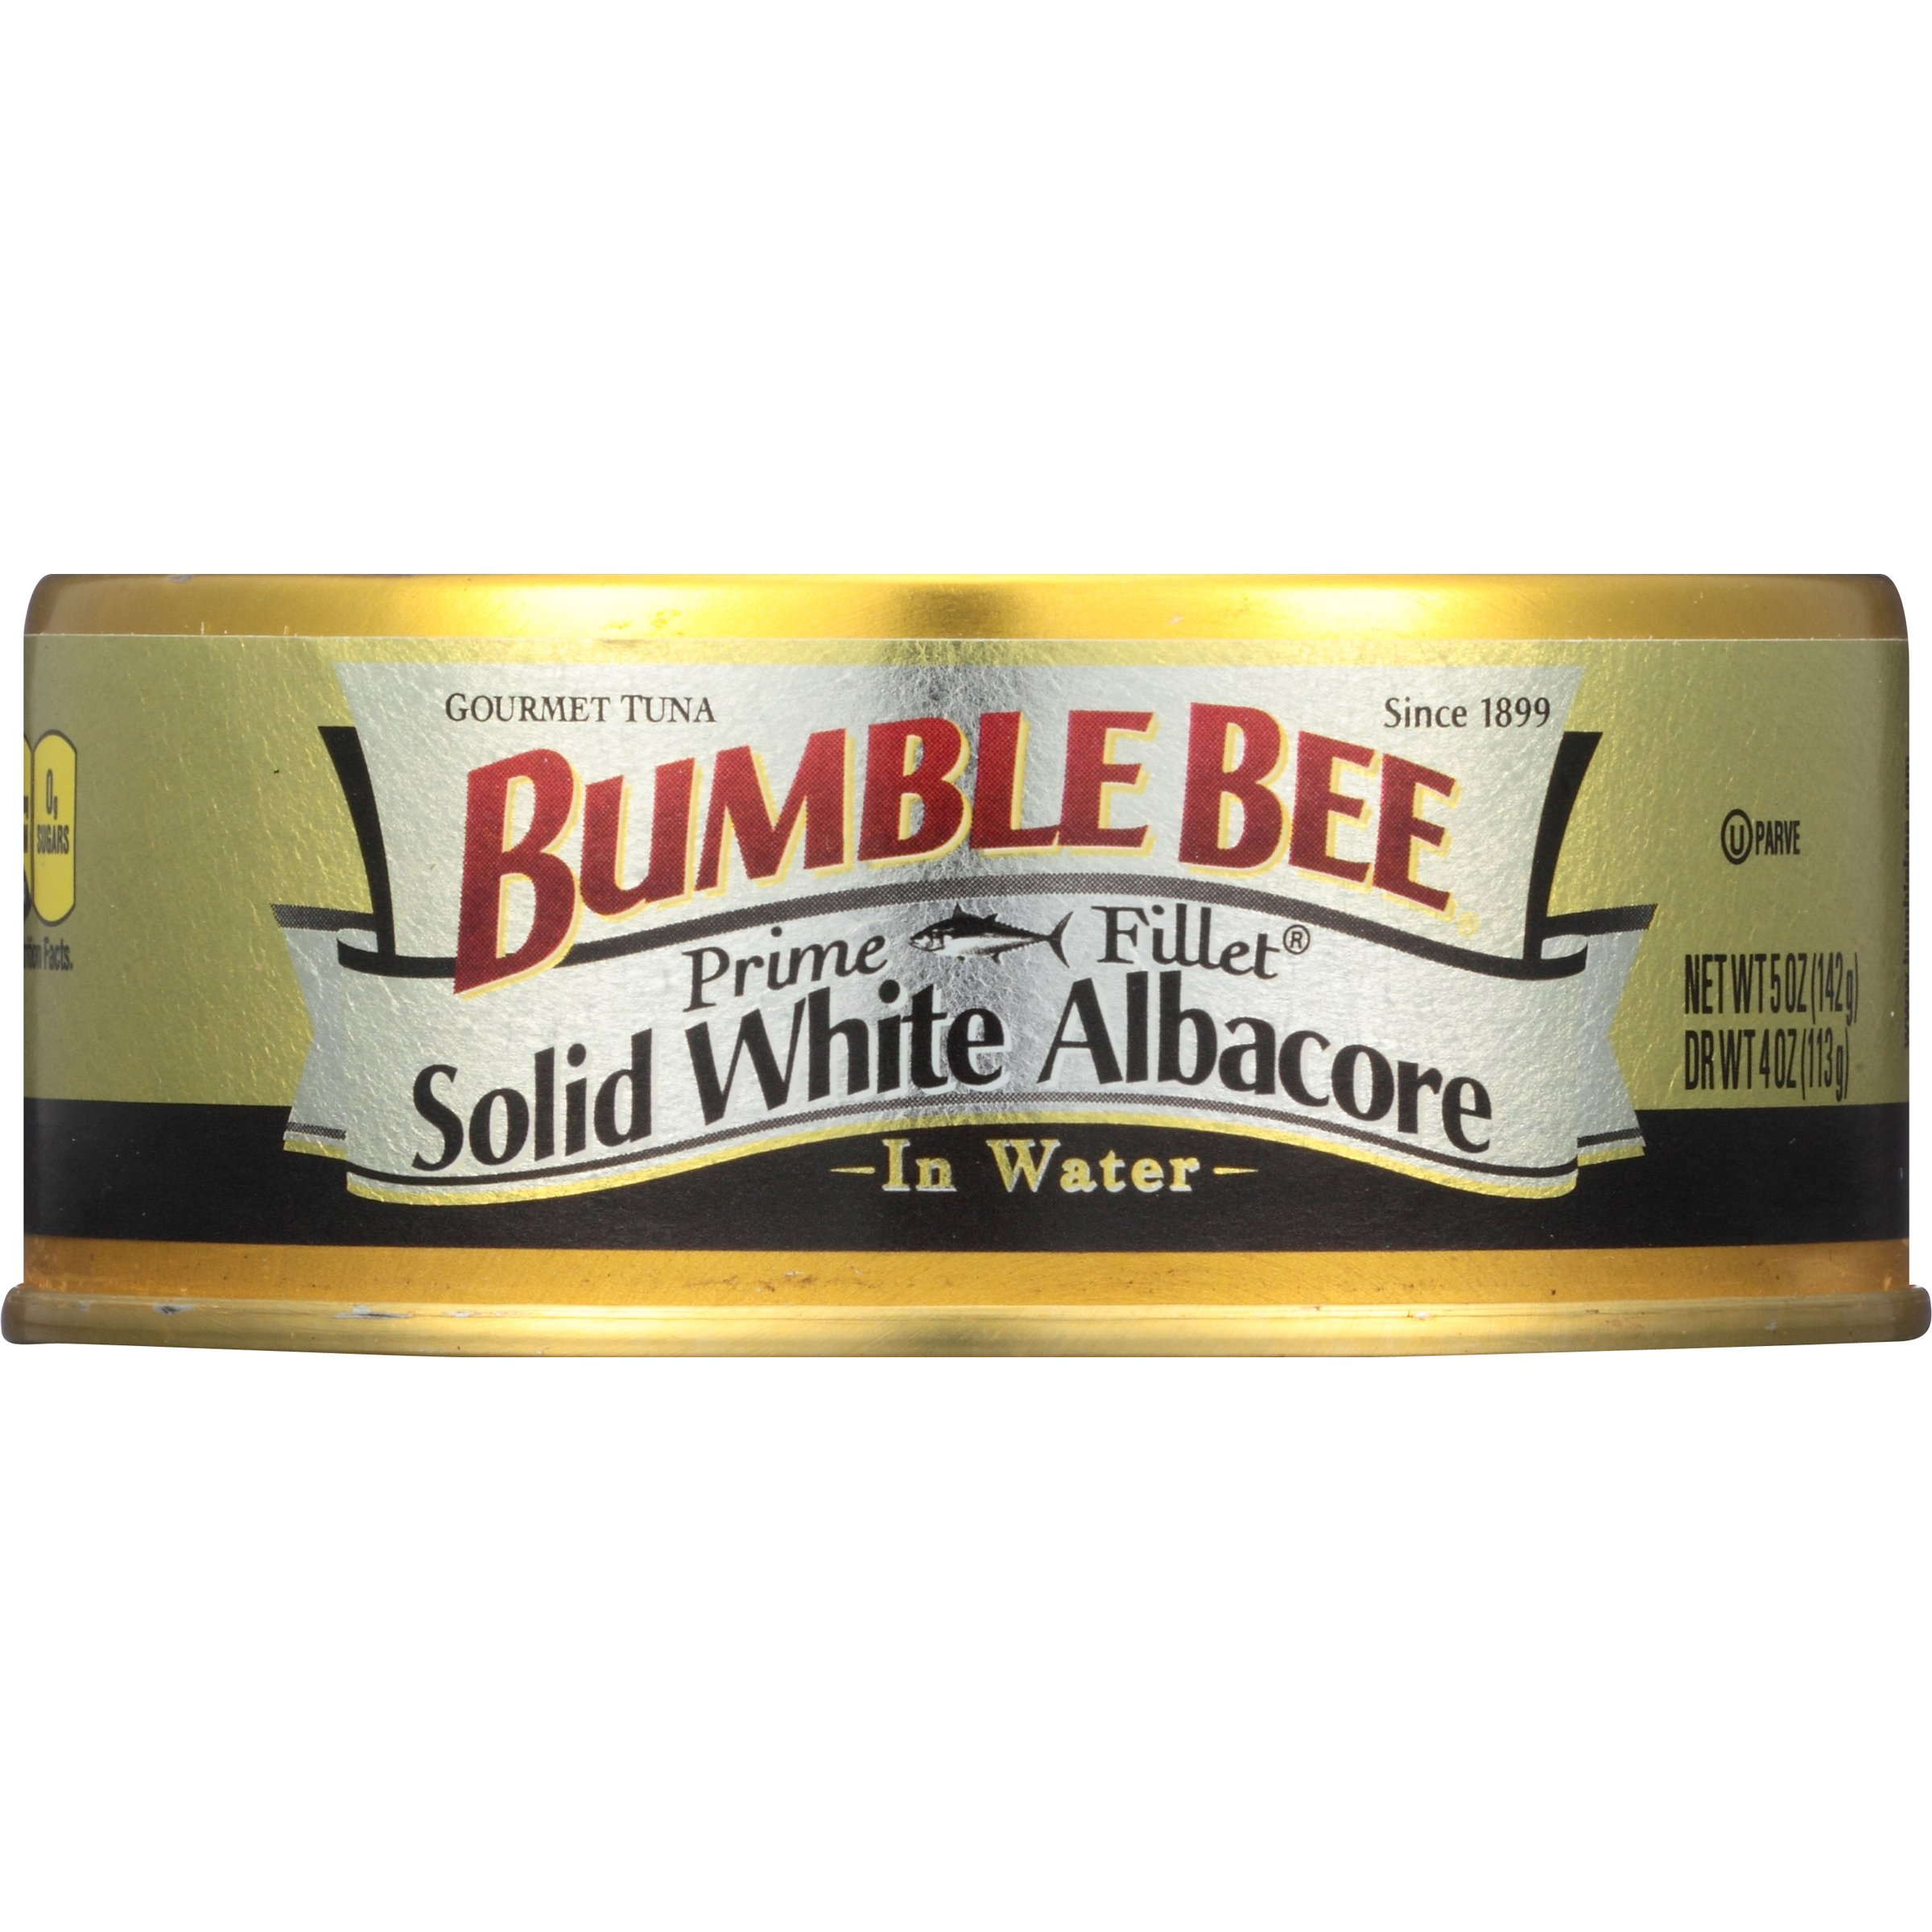 Bumble Bee Prime Fillet Solid White Albacore Tuna in Water, 5oz can